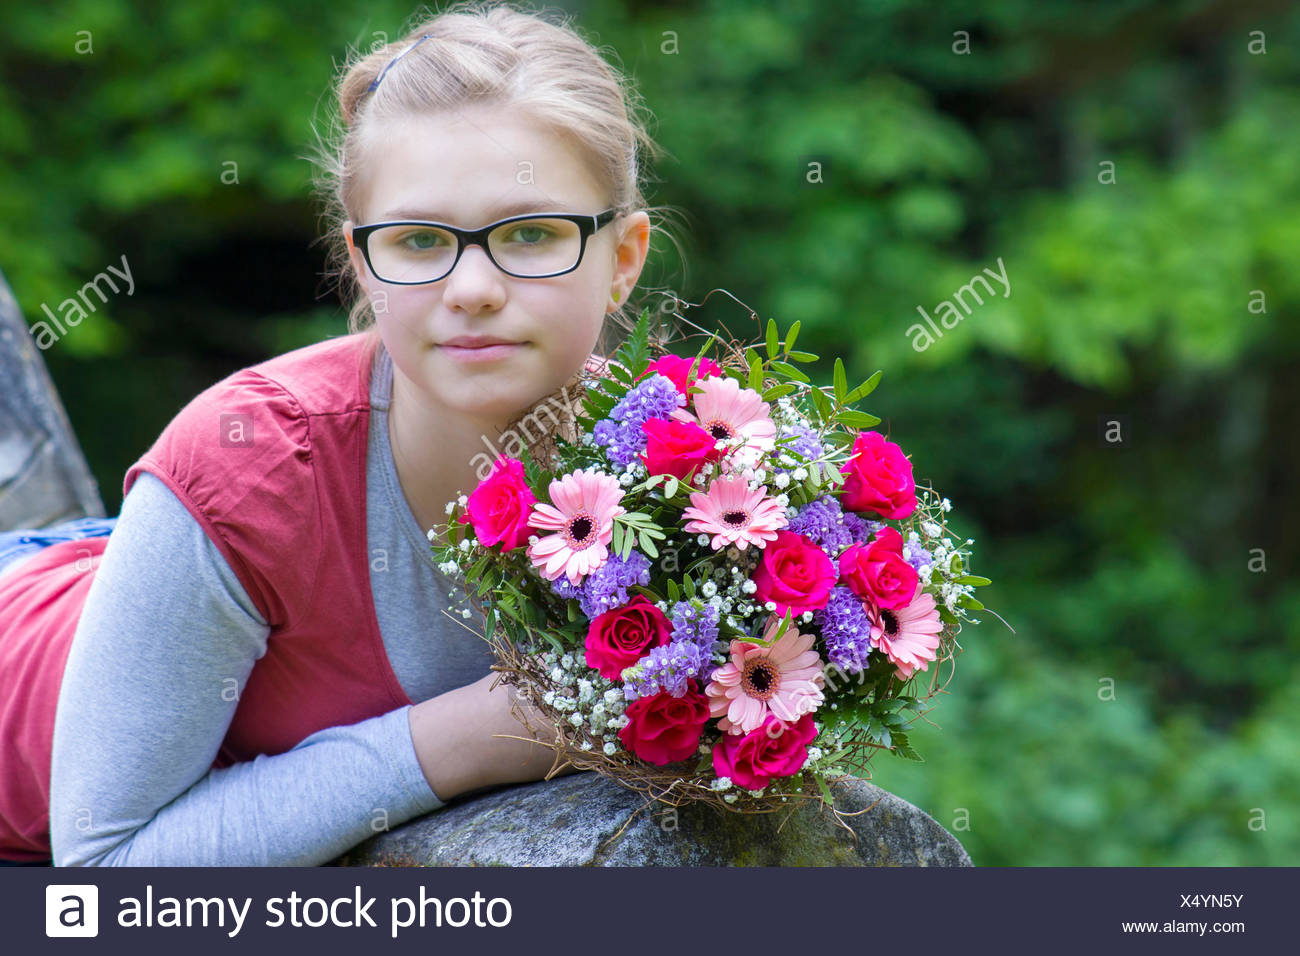 Portrait of a beautiful young girl with flowers stock photo portrait of a beautiful young girl with flowers izmirmasajfo